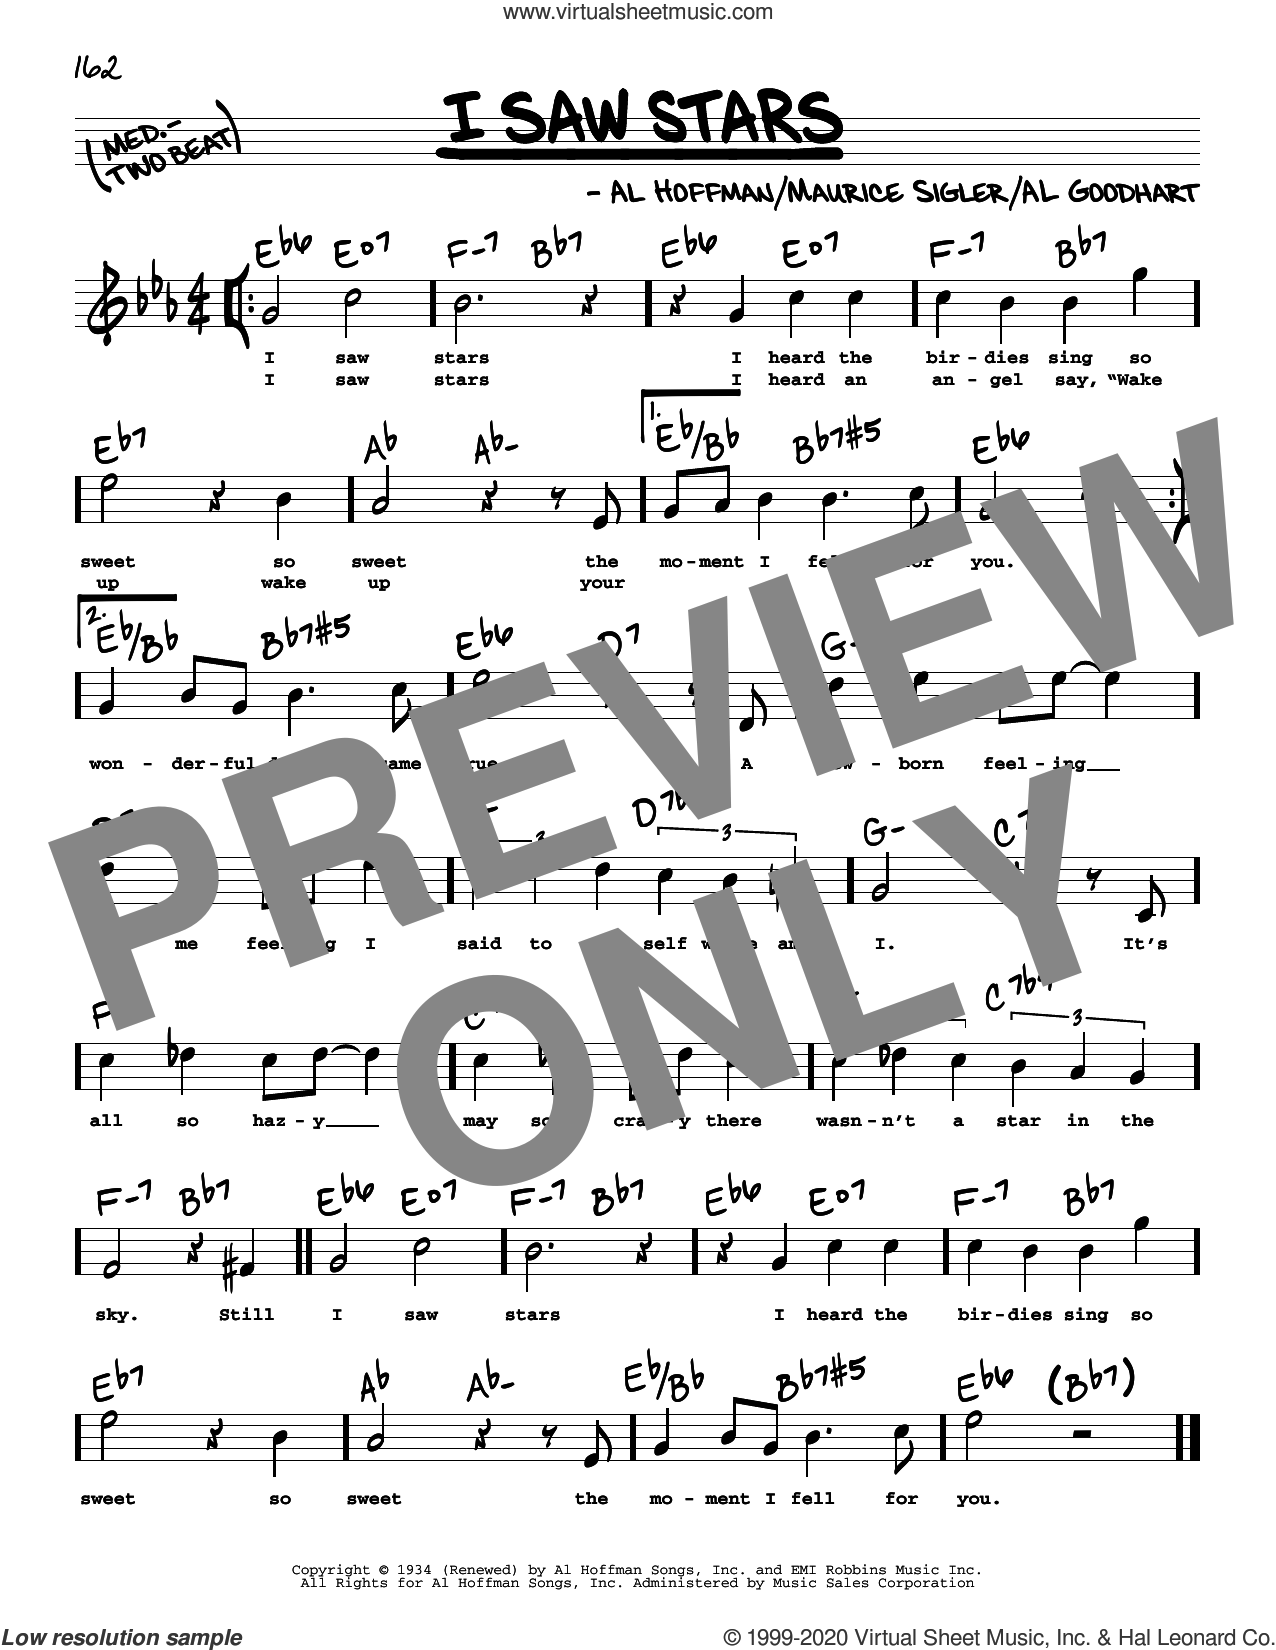 I Saw Stars (High Voice) sheet music for voice and other instruments (high voice) by Al Hoffman, Al Goodhart and Maurice Sigler, intermediate skill level